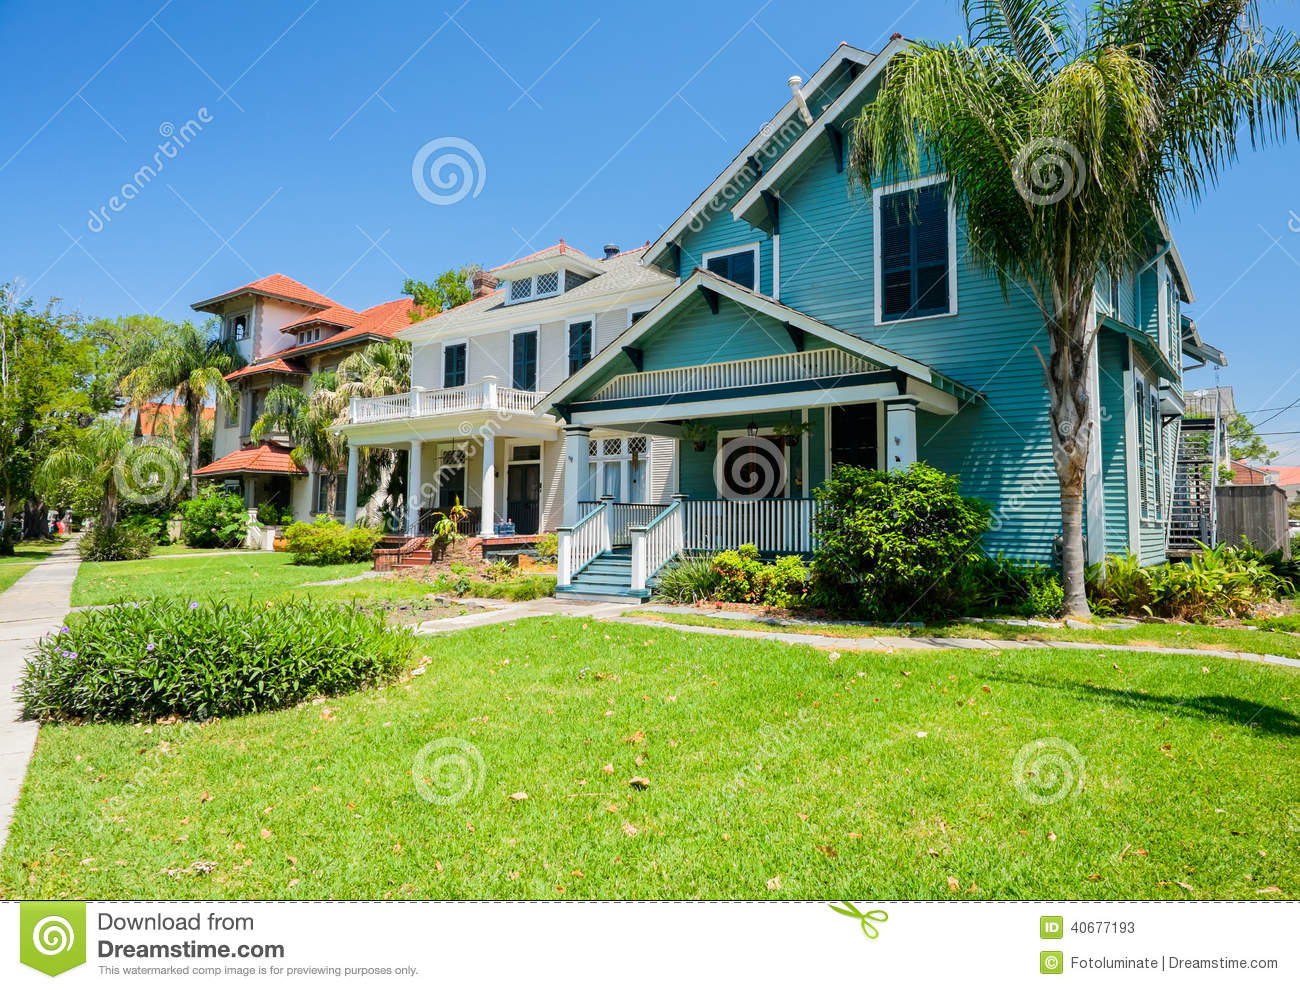 Southern Homes Stock Photo Image 40677193